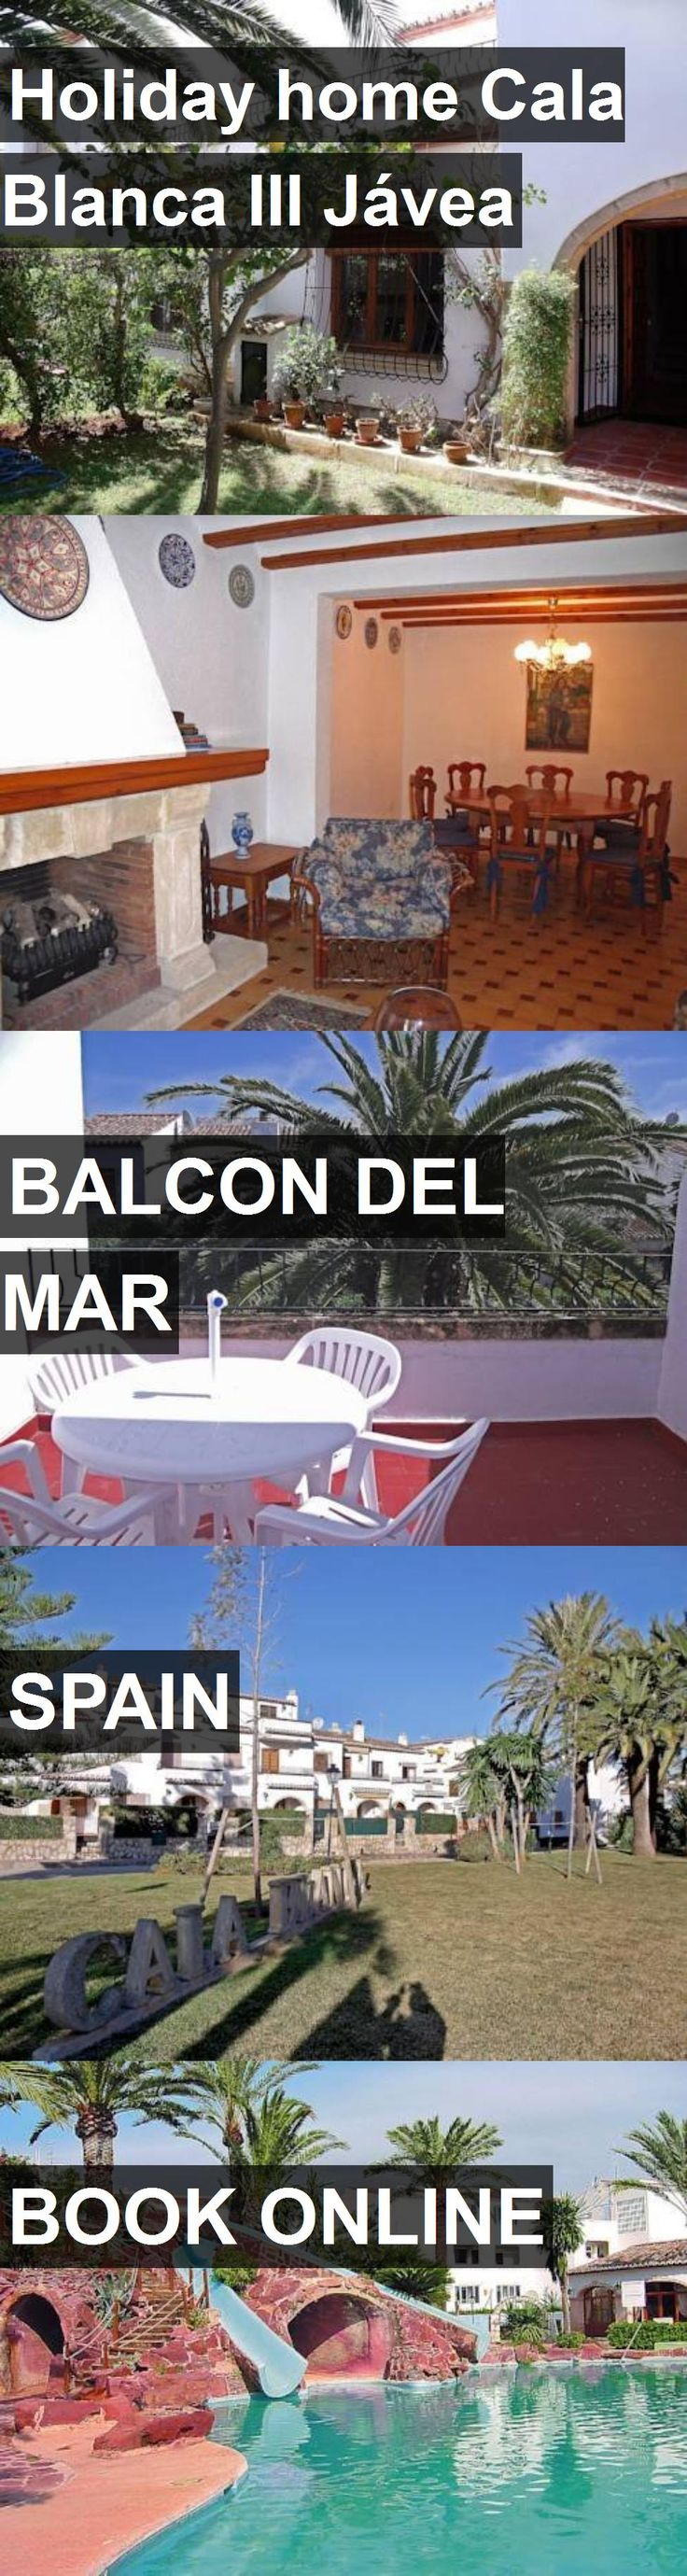 Hotel Holiday home Cala Blanca III Jávea in Balcon del Mar, Spain. For more information, photos, reviews and best prices please follow the link. #Spain #BalcondelMar #HolidayhomeCalaBlancaIIIJávea #hotel #travel #vacation